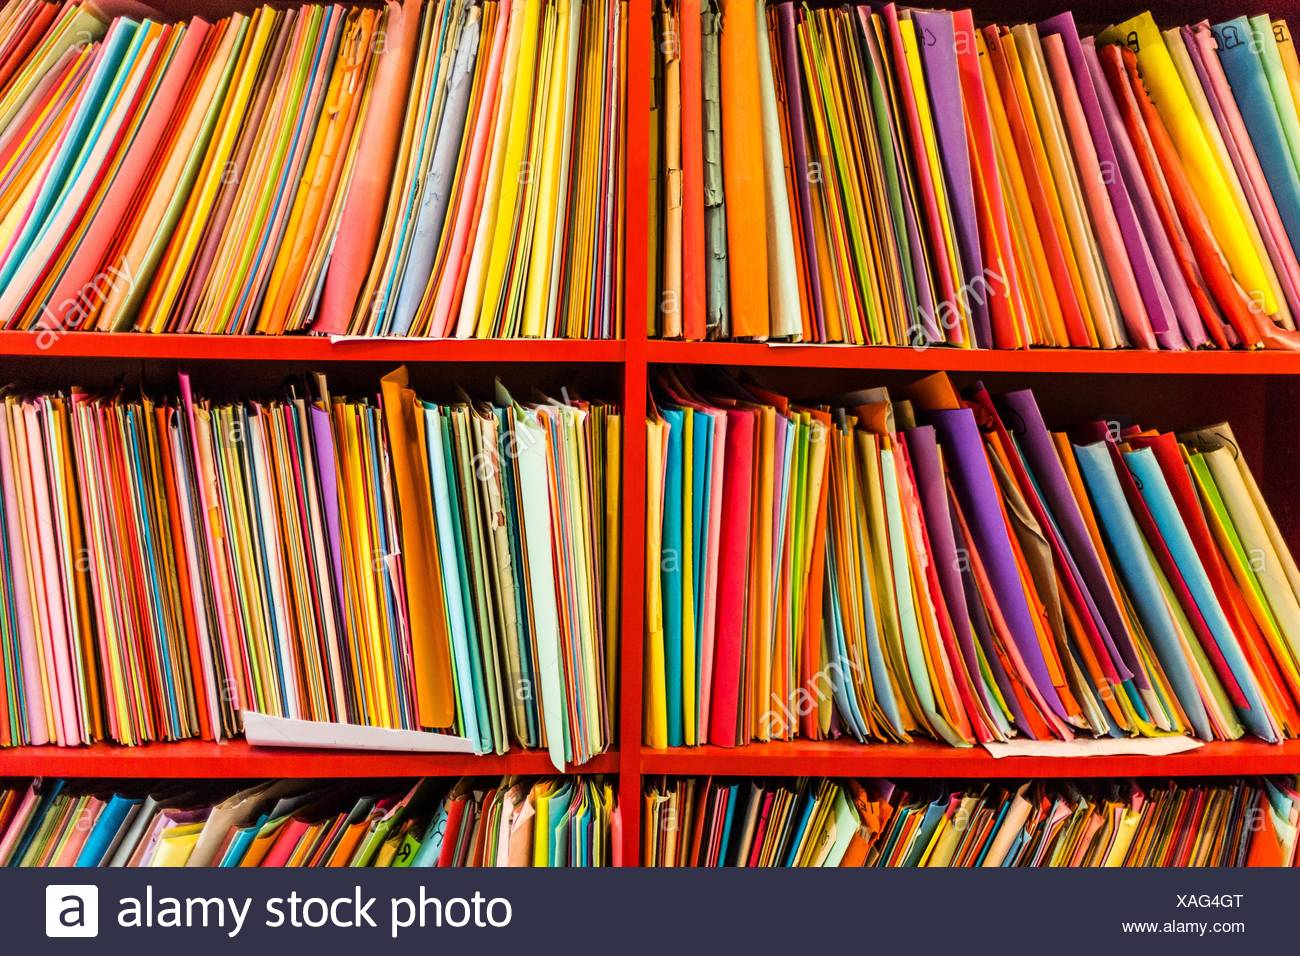 Records on shelves. - Stock Image